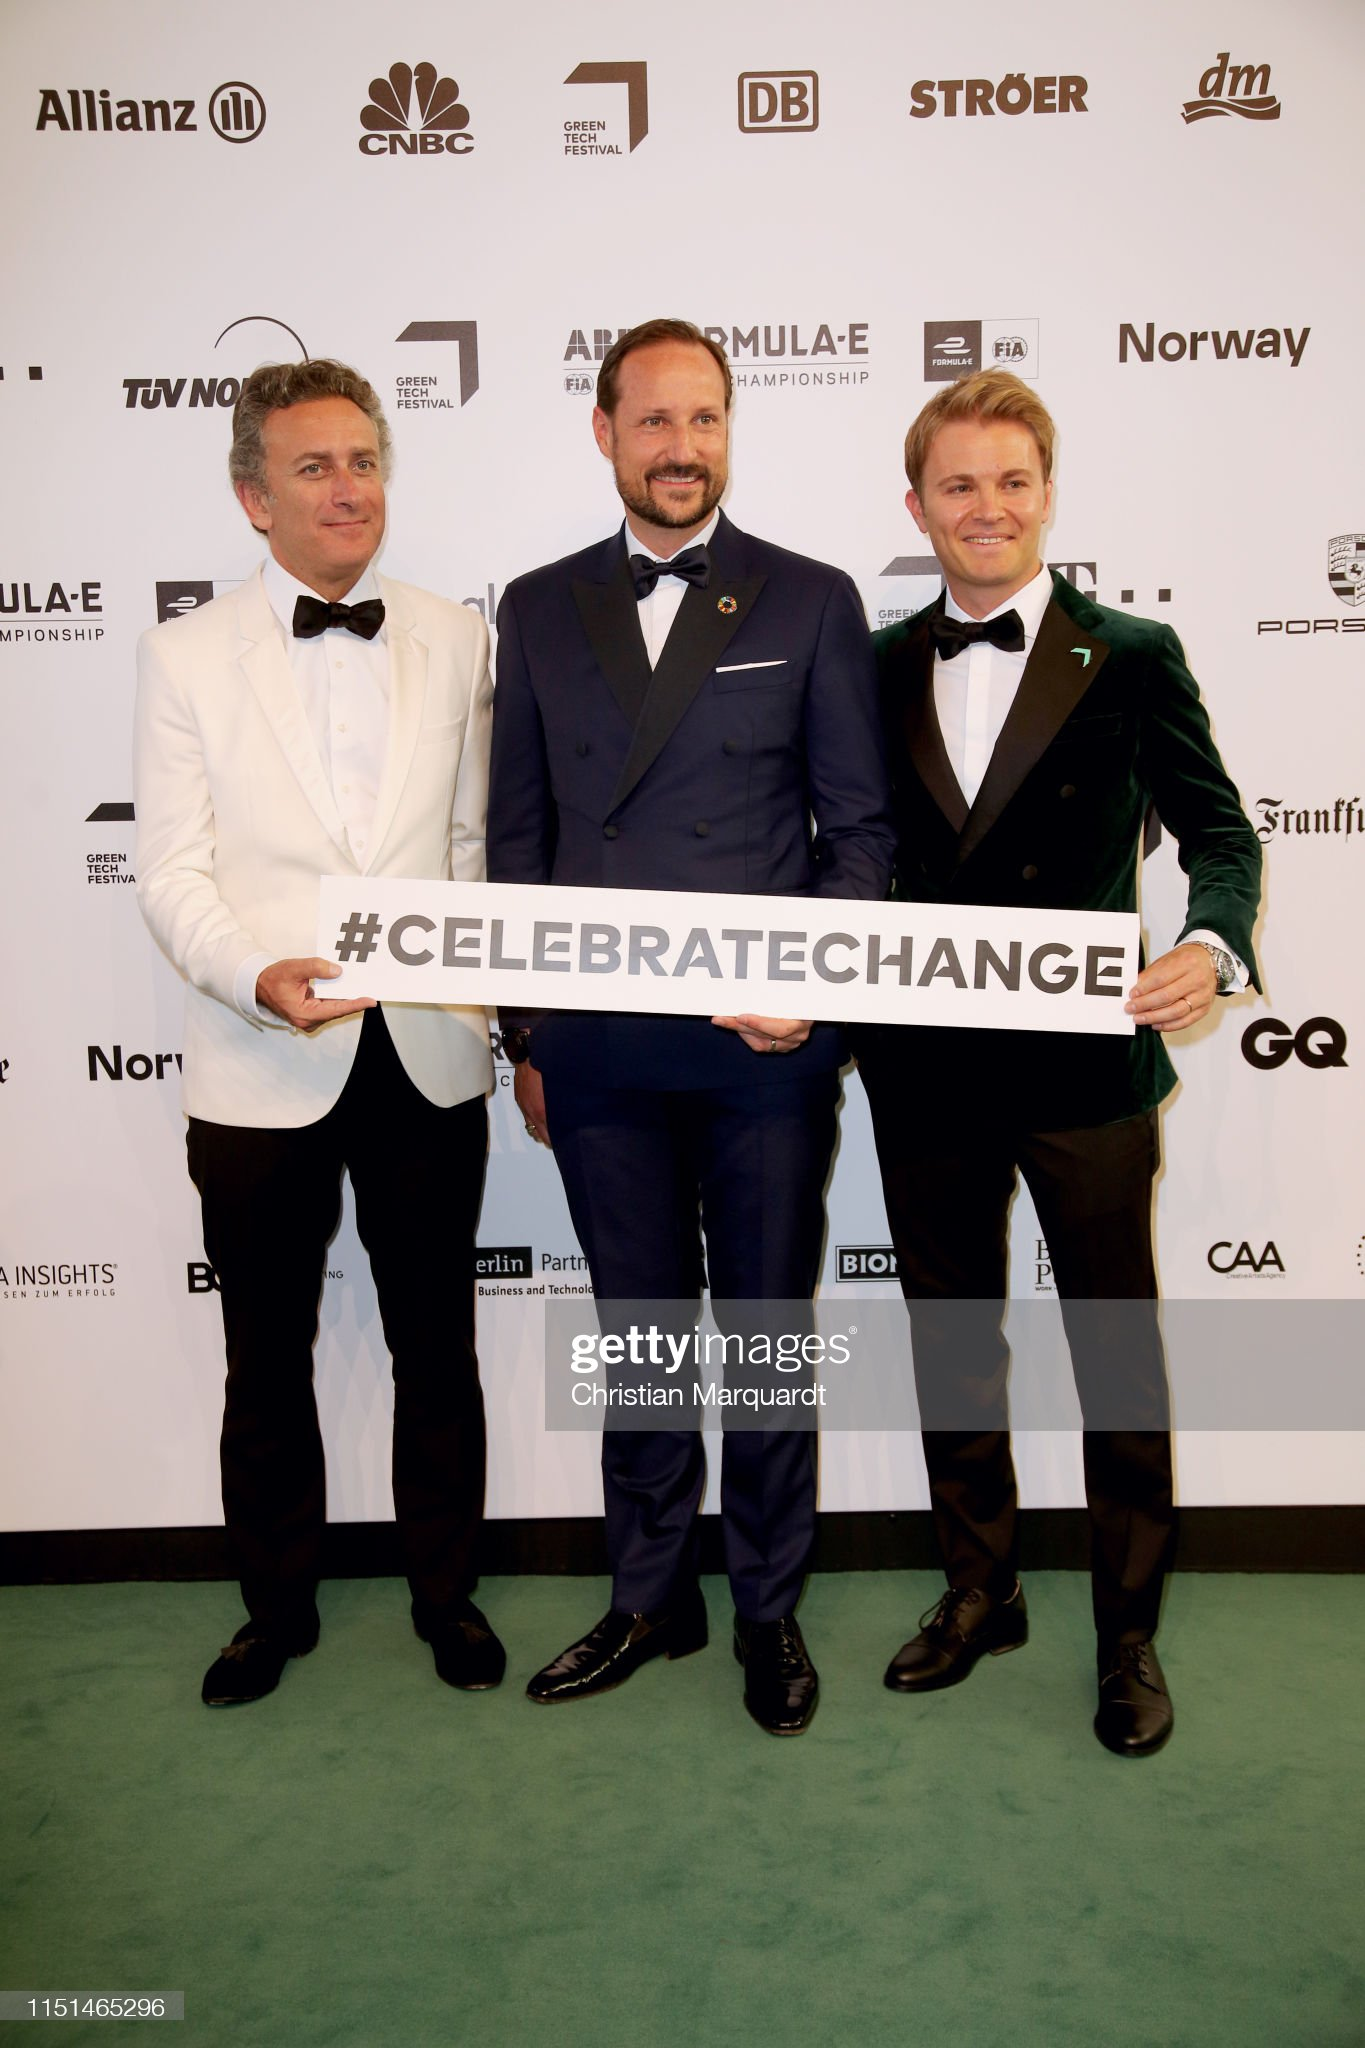 ¿Cuánto mide Alejandro Agag? - Altura - Real height Alejandro-agag-crown-prince-haakon-of-norway-and-nico-rosberg-attend-picture-id1151465296?s=2048x2048